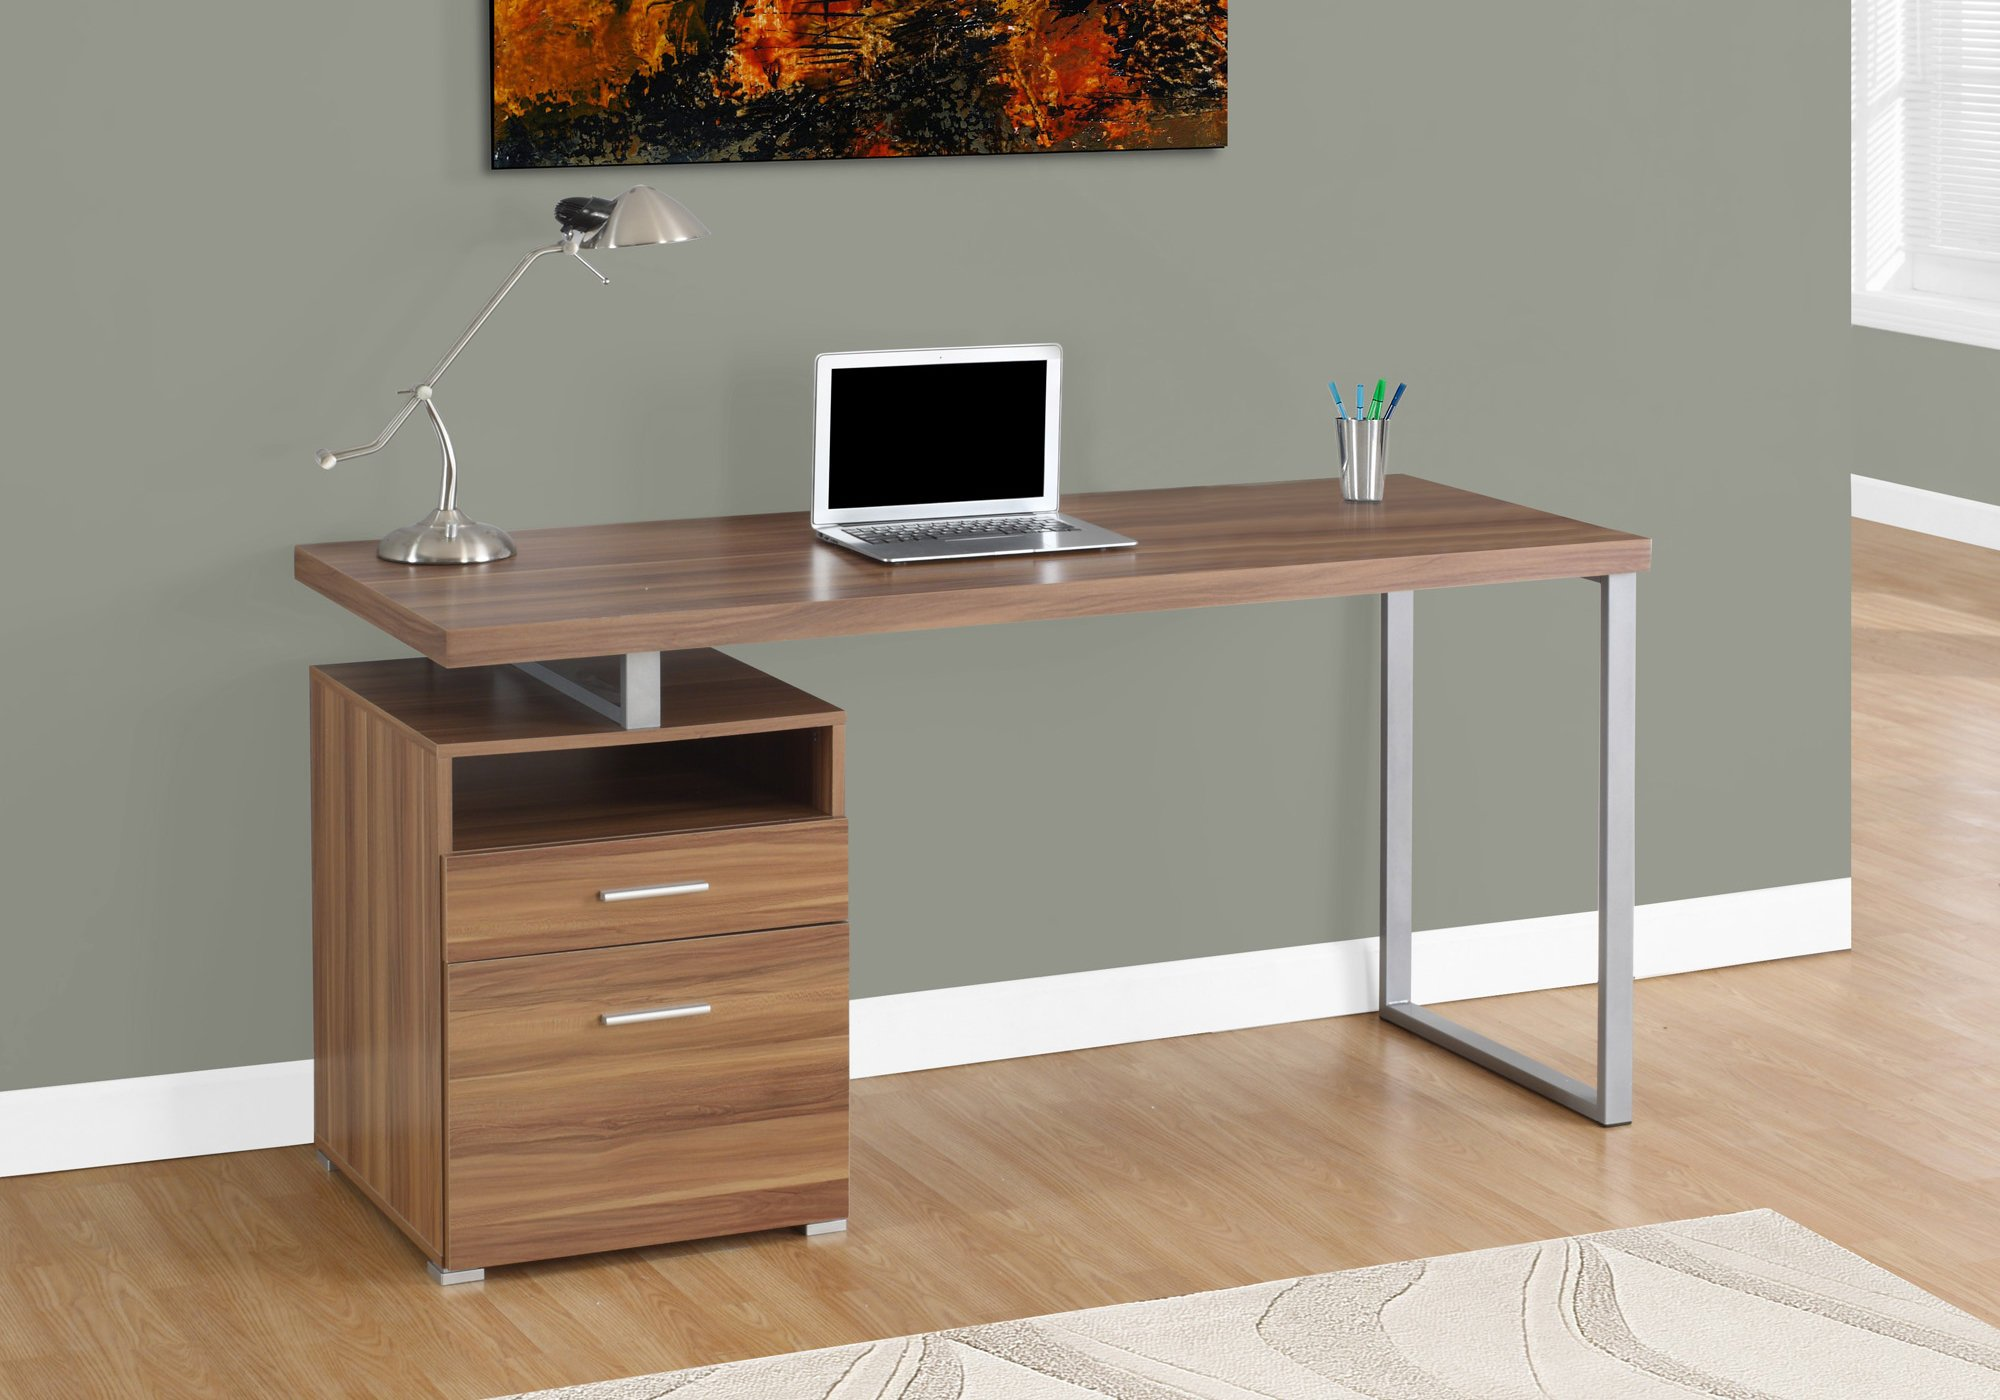 Monarch Specialties I I 7146 Laptop Table with Drawer Open Shelf and File Cabinet - Left or Right Set Up Computer, Writing Desk for Home & Office, 60'' L, Walnut by Monarch Specialties